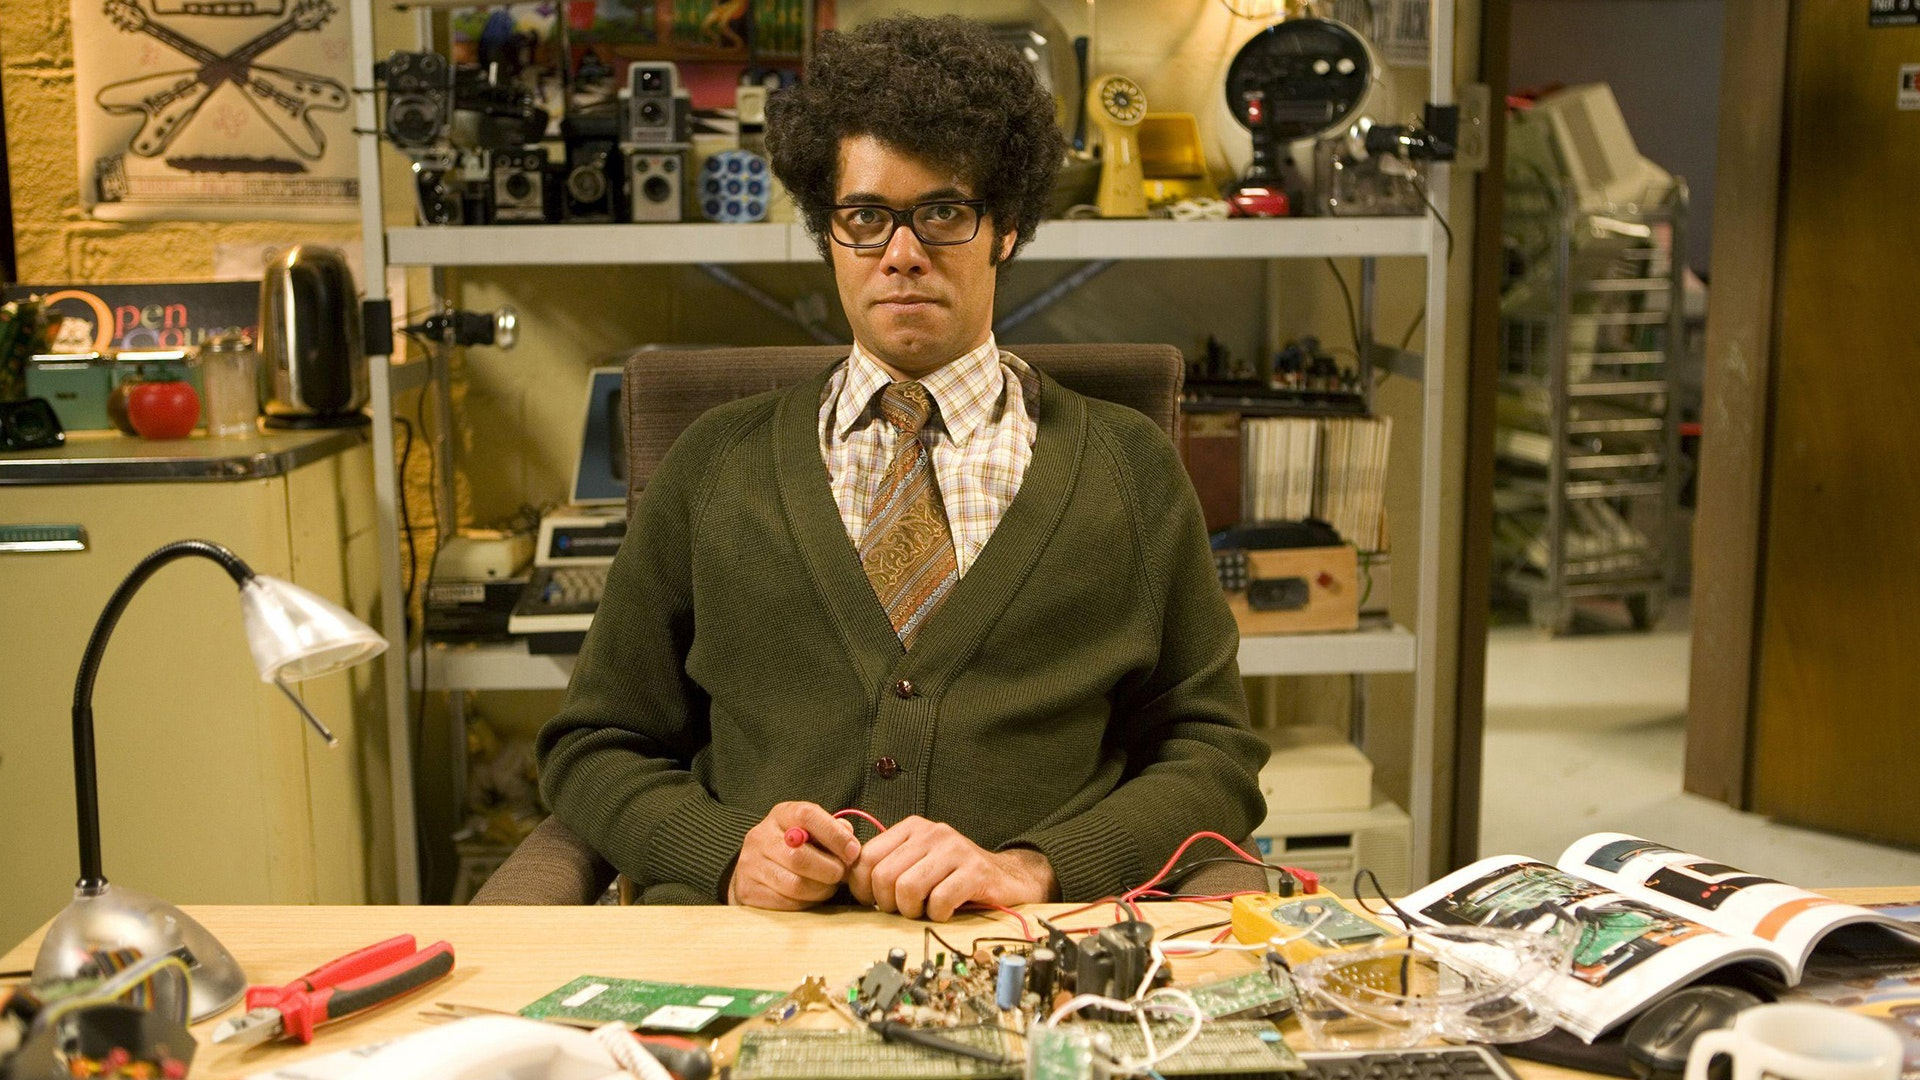 the-it-crowd-50a7548234ad9